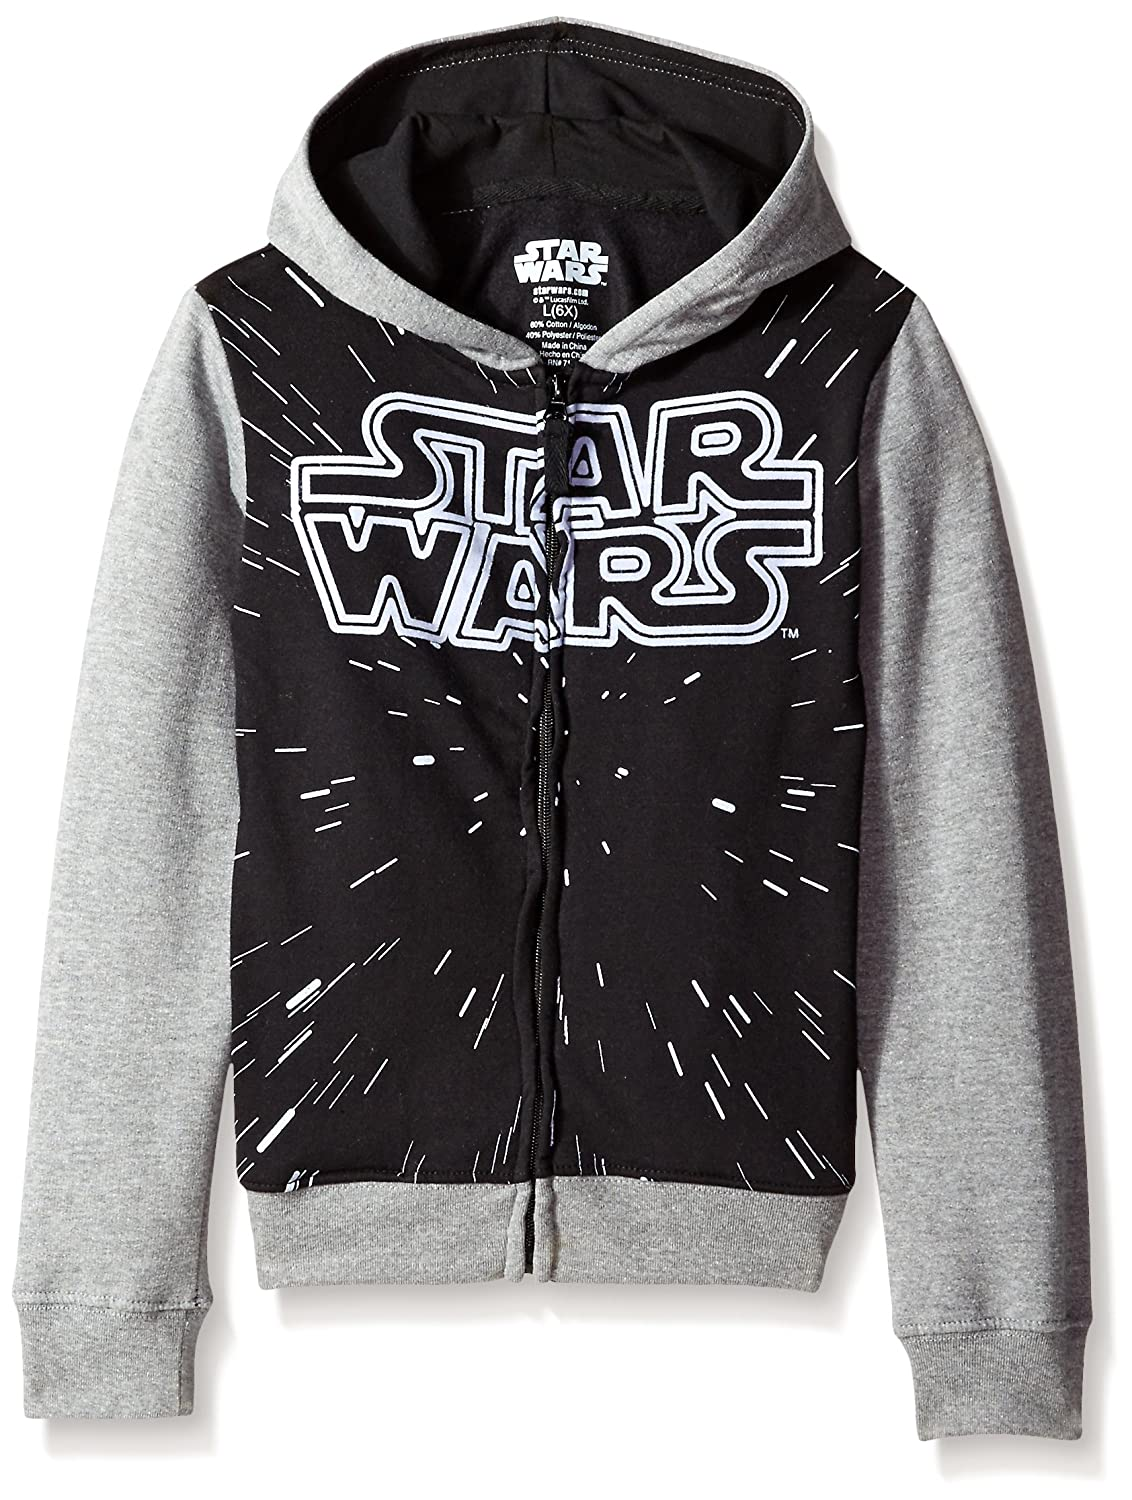 Star Wars Girls French Terry Zip-Front Hoodie Sweatshirt